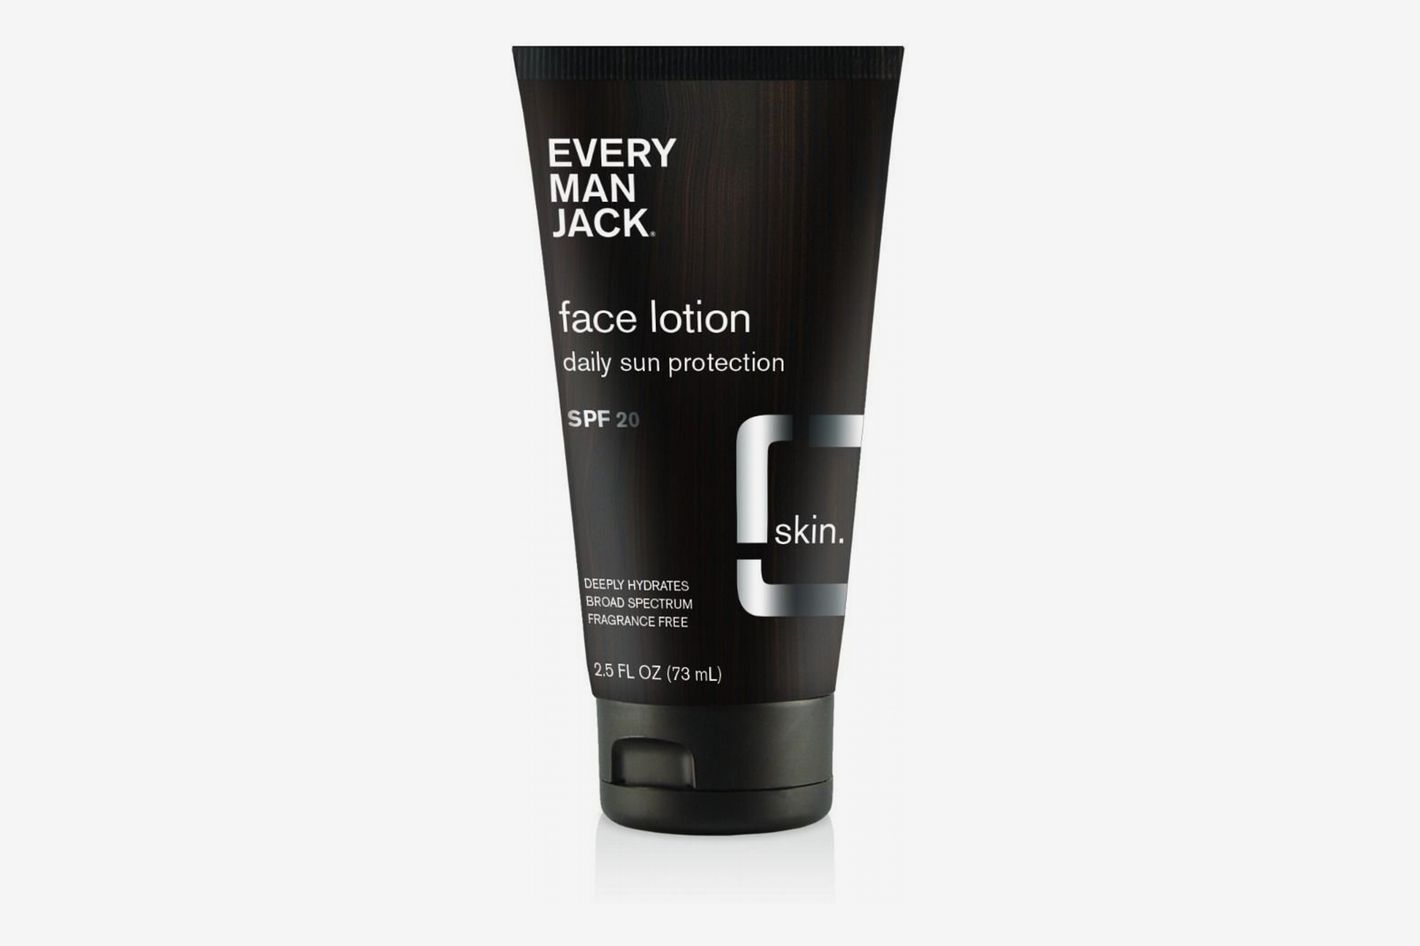 Every Man Jack Daily Sun Protection Face Lotion